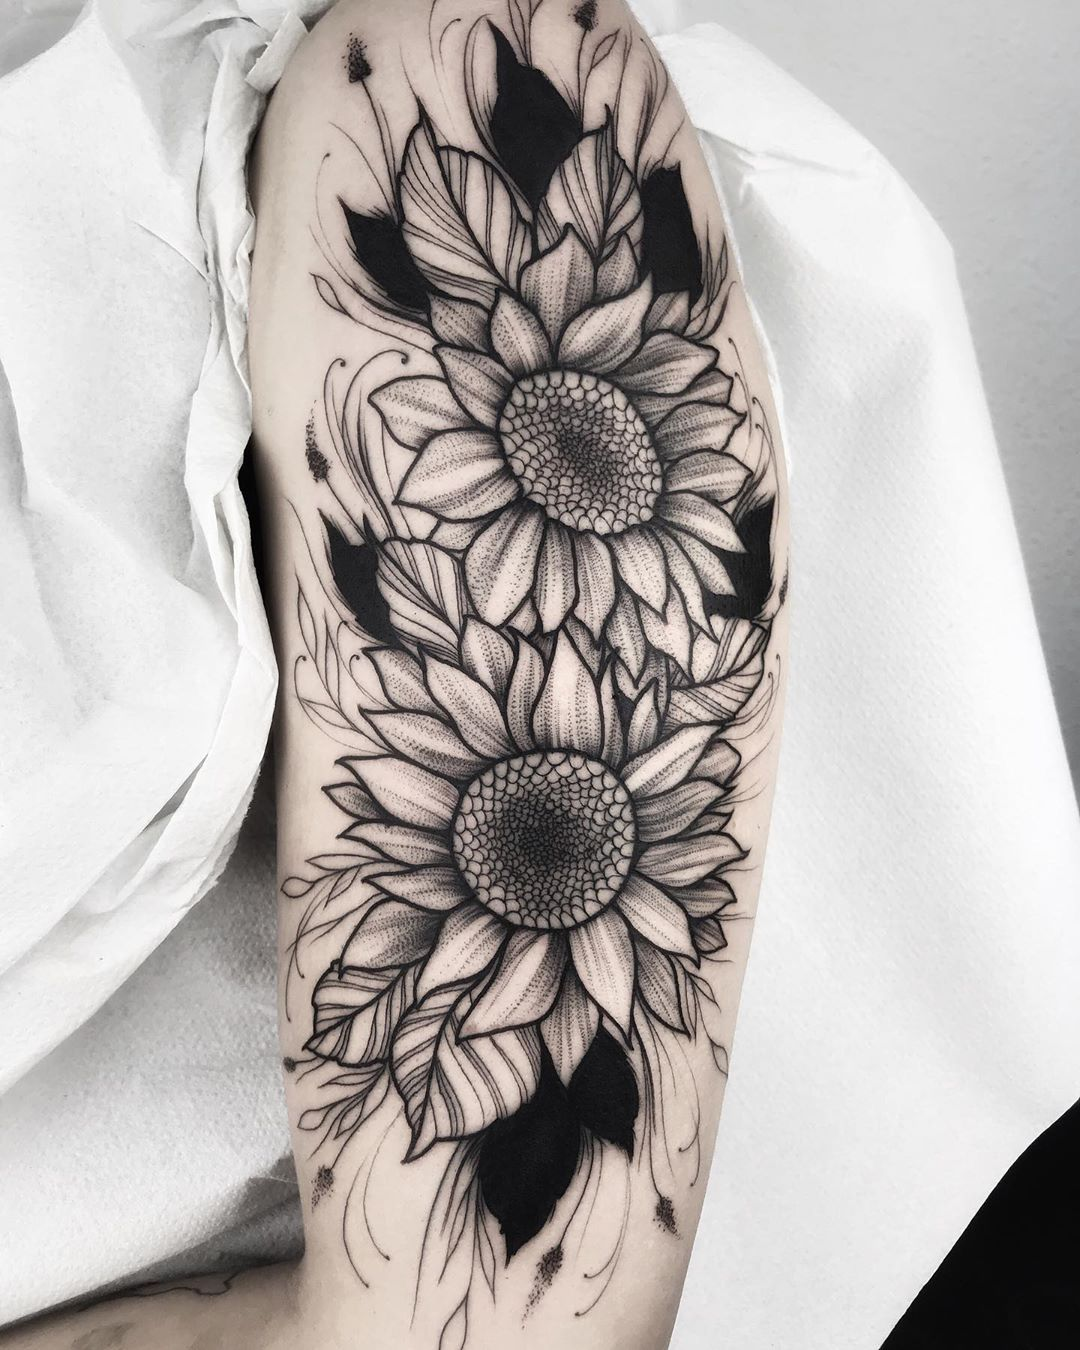 Neo Traditional Sunflower Tattoo : traditional, sunflower, tattoo, 🌷FLOWORK🌷, Realizada, @ondotattoo, Gracias🌷📥, Citas, 📥dm, 📞608341267, #blackwork…, Tattoos,, Sunflower, Tattoos